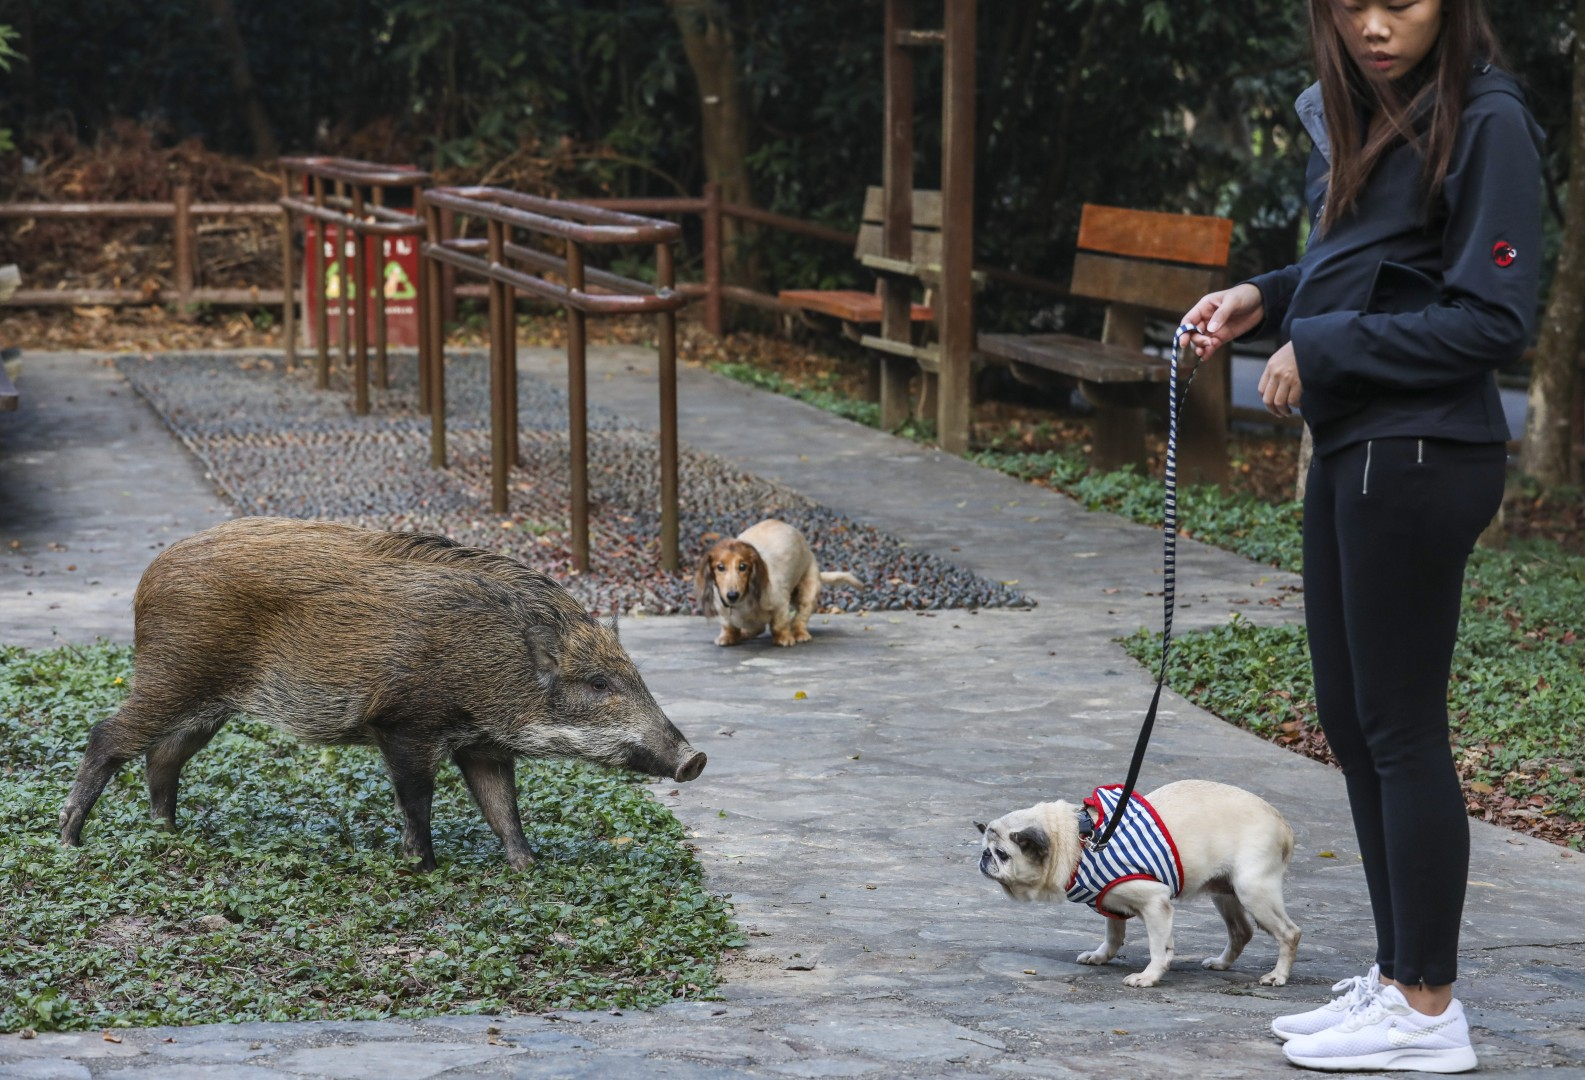 Wild boars in Hong Kong: are they dangerous, why are there